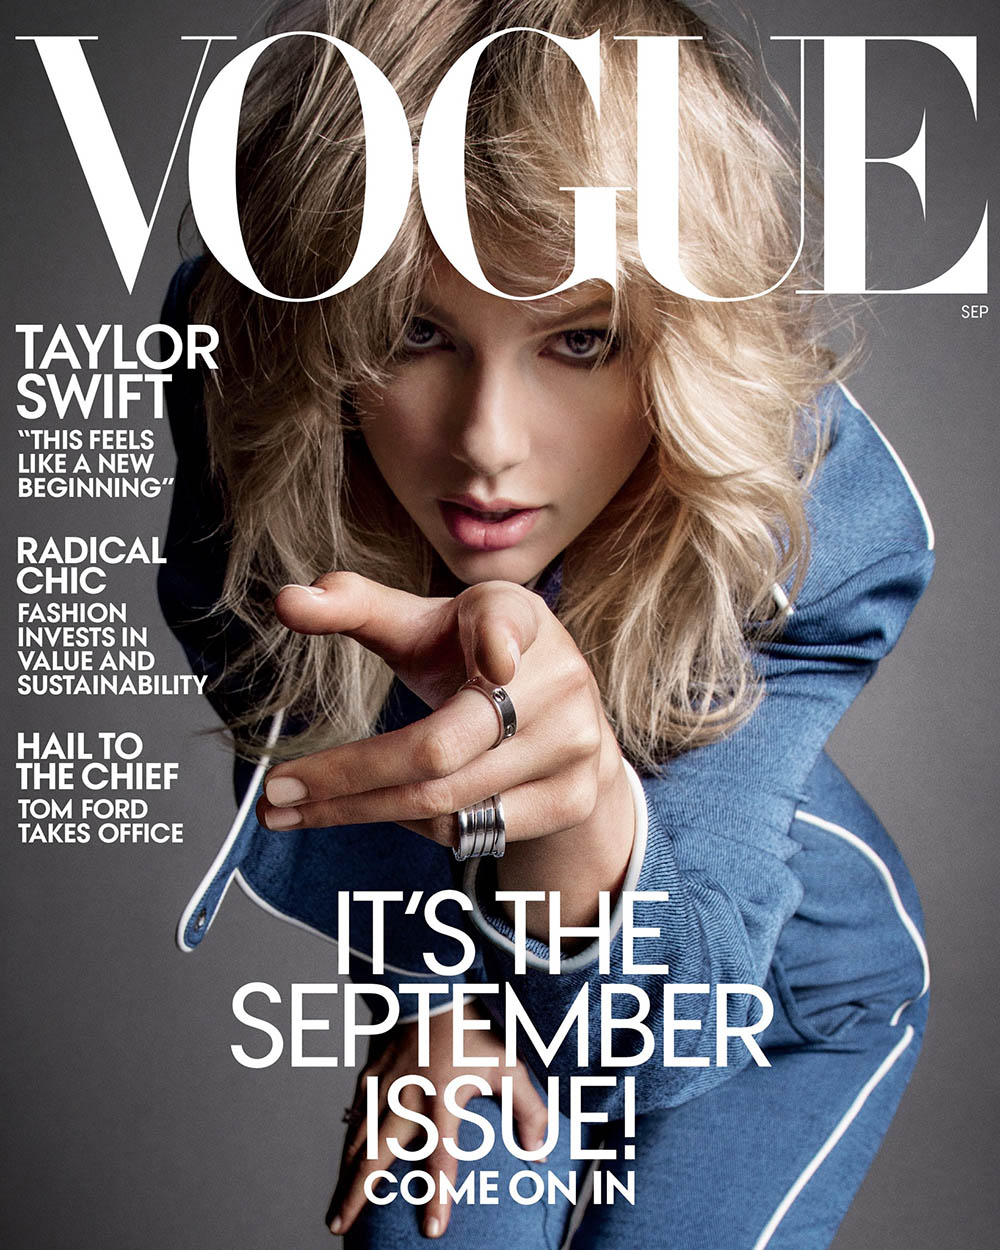 Taylor Swift covers Vogue US September 2019 by Inez and Vinoodh